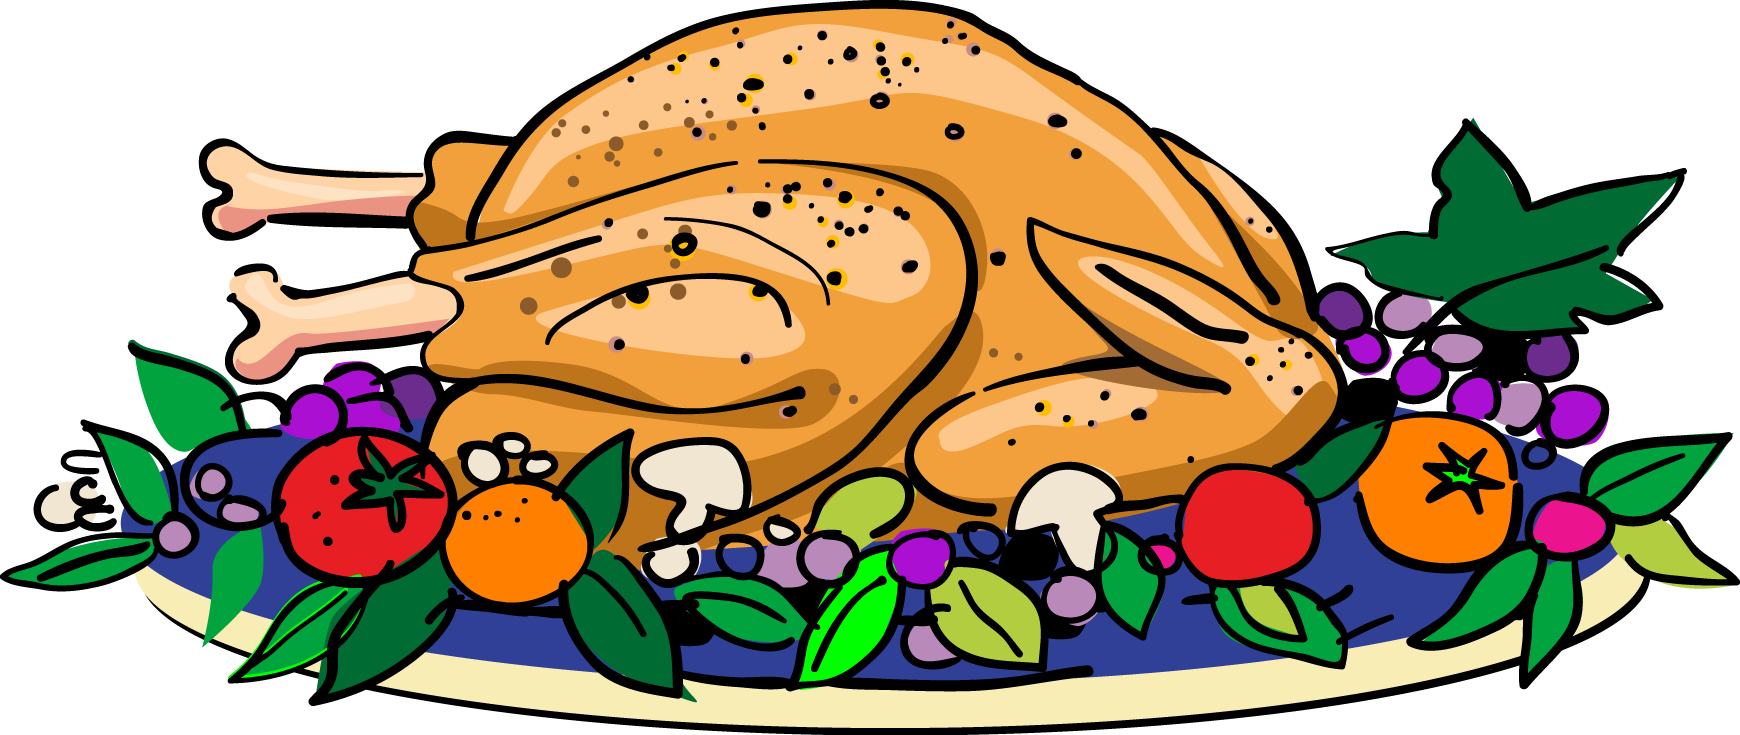 28+ Collection of Turkey Clipart Food | High quality, free cliparts ... clipart